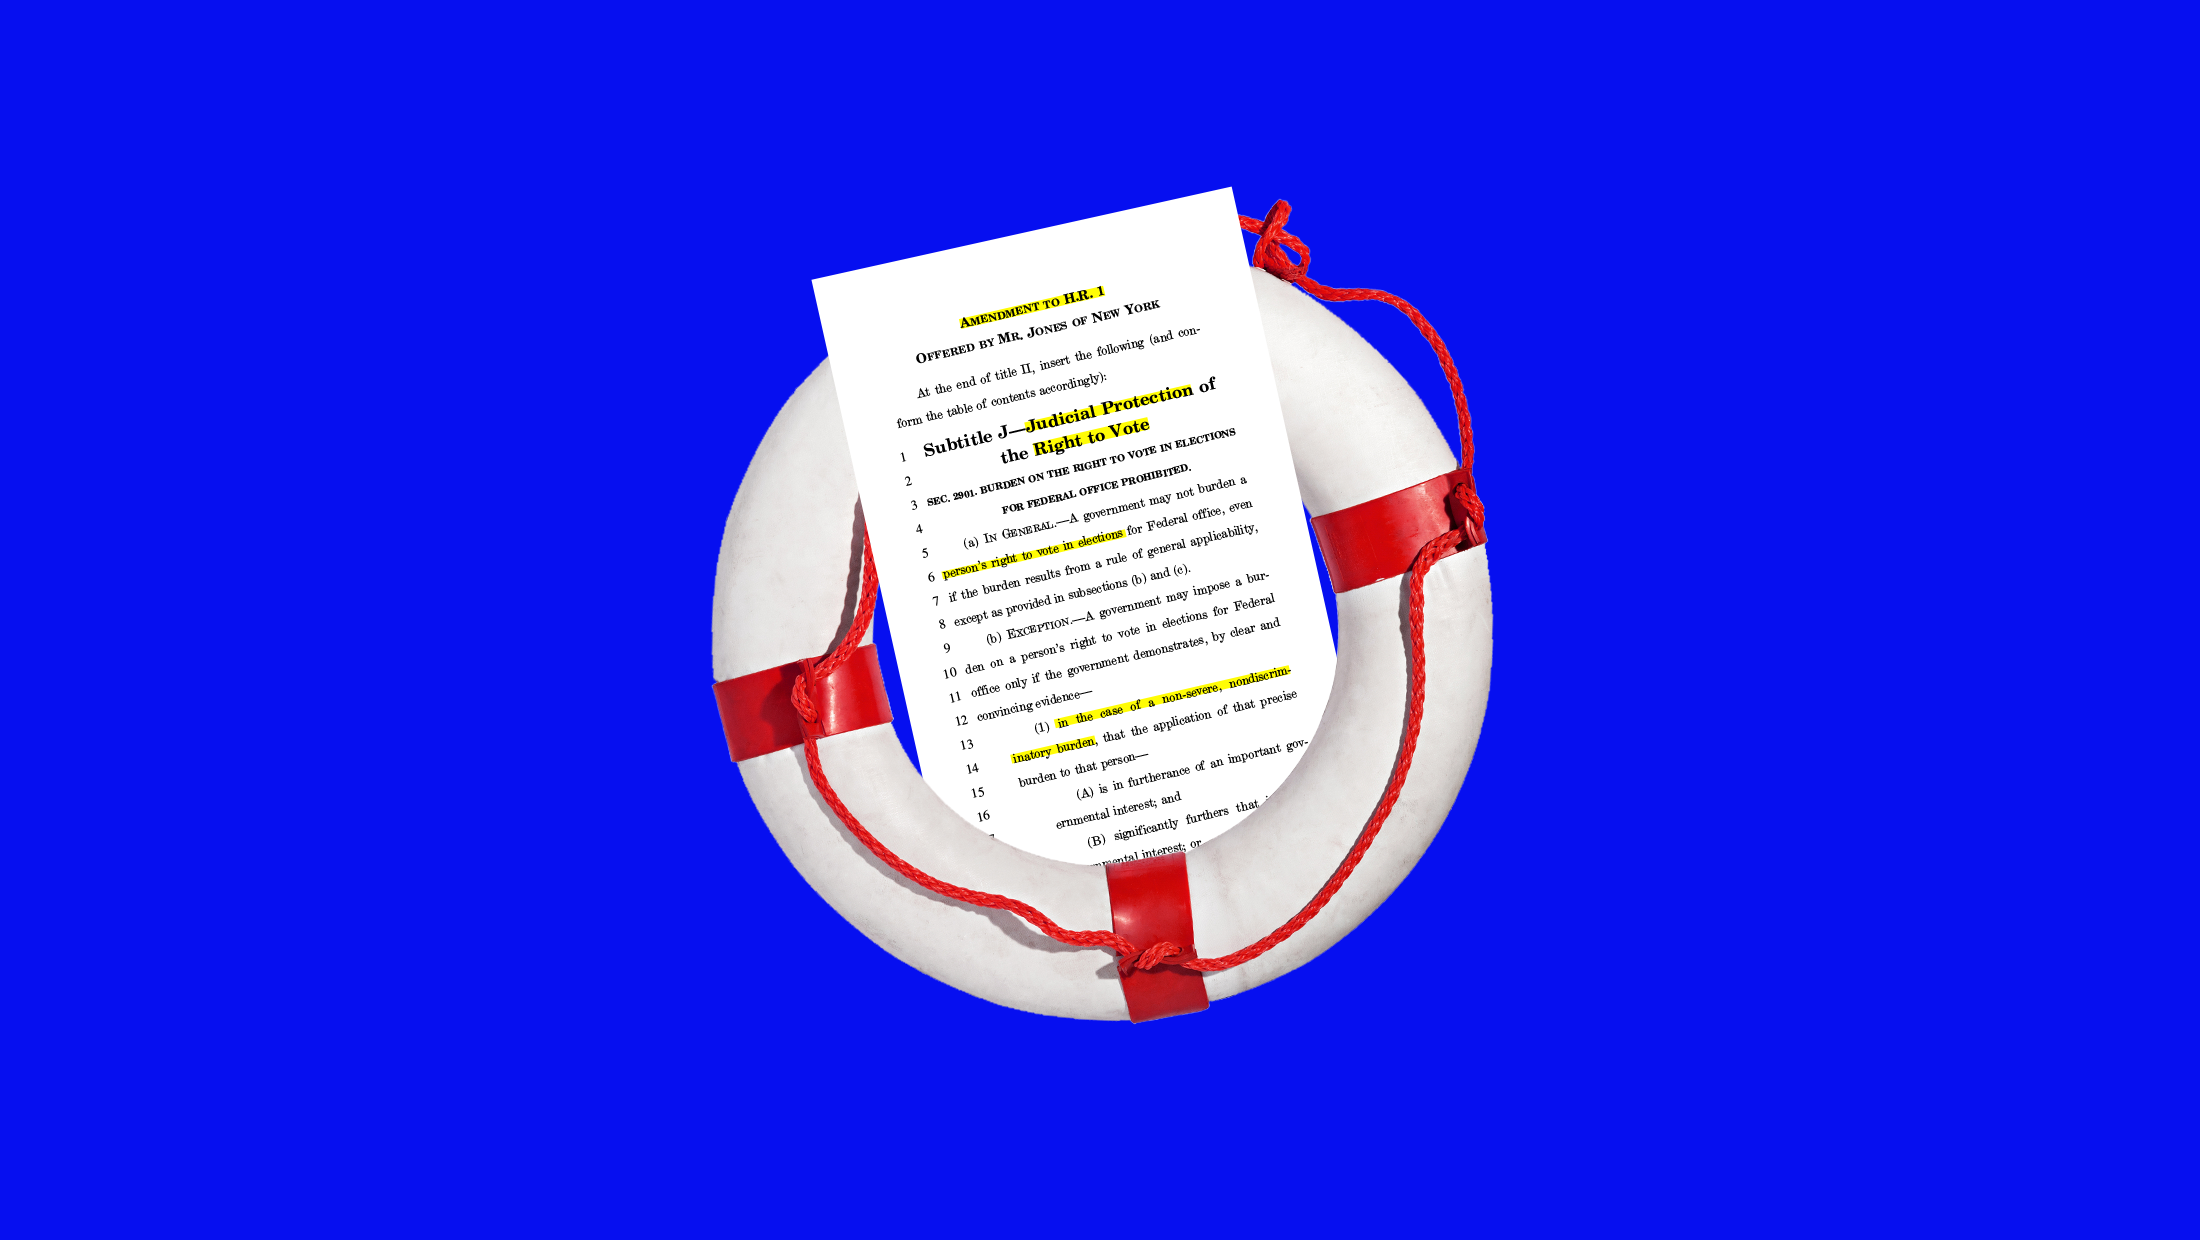 A highlighted amendment to H.R.1, For The People Act sitting inside a life preserver ring